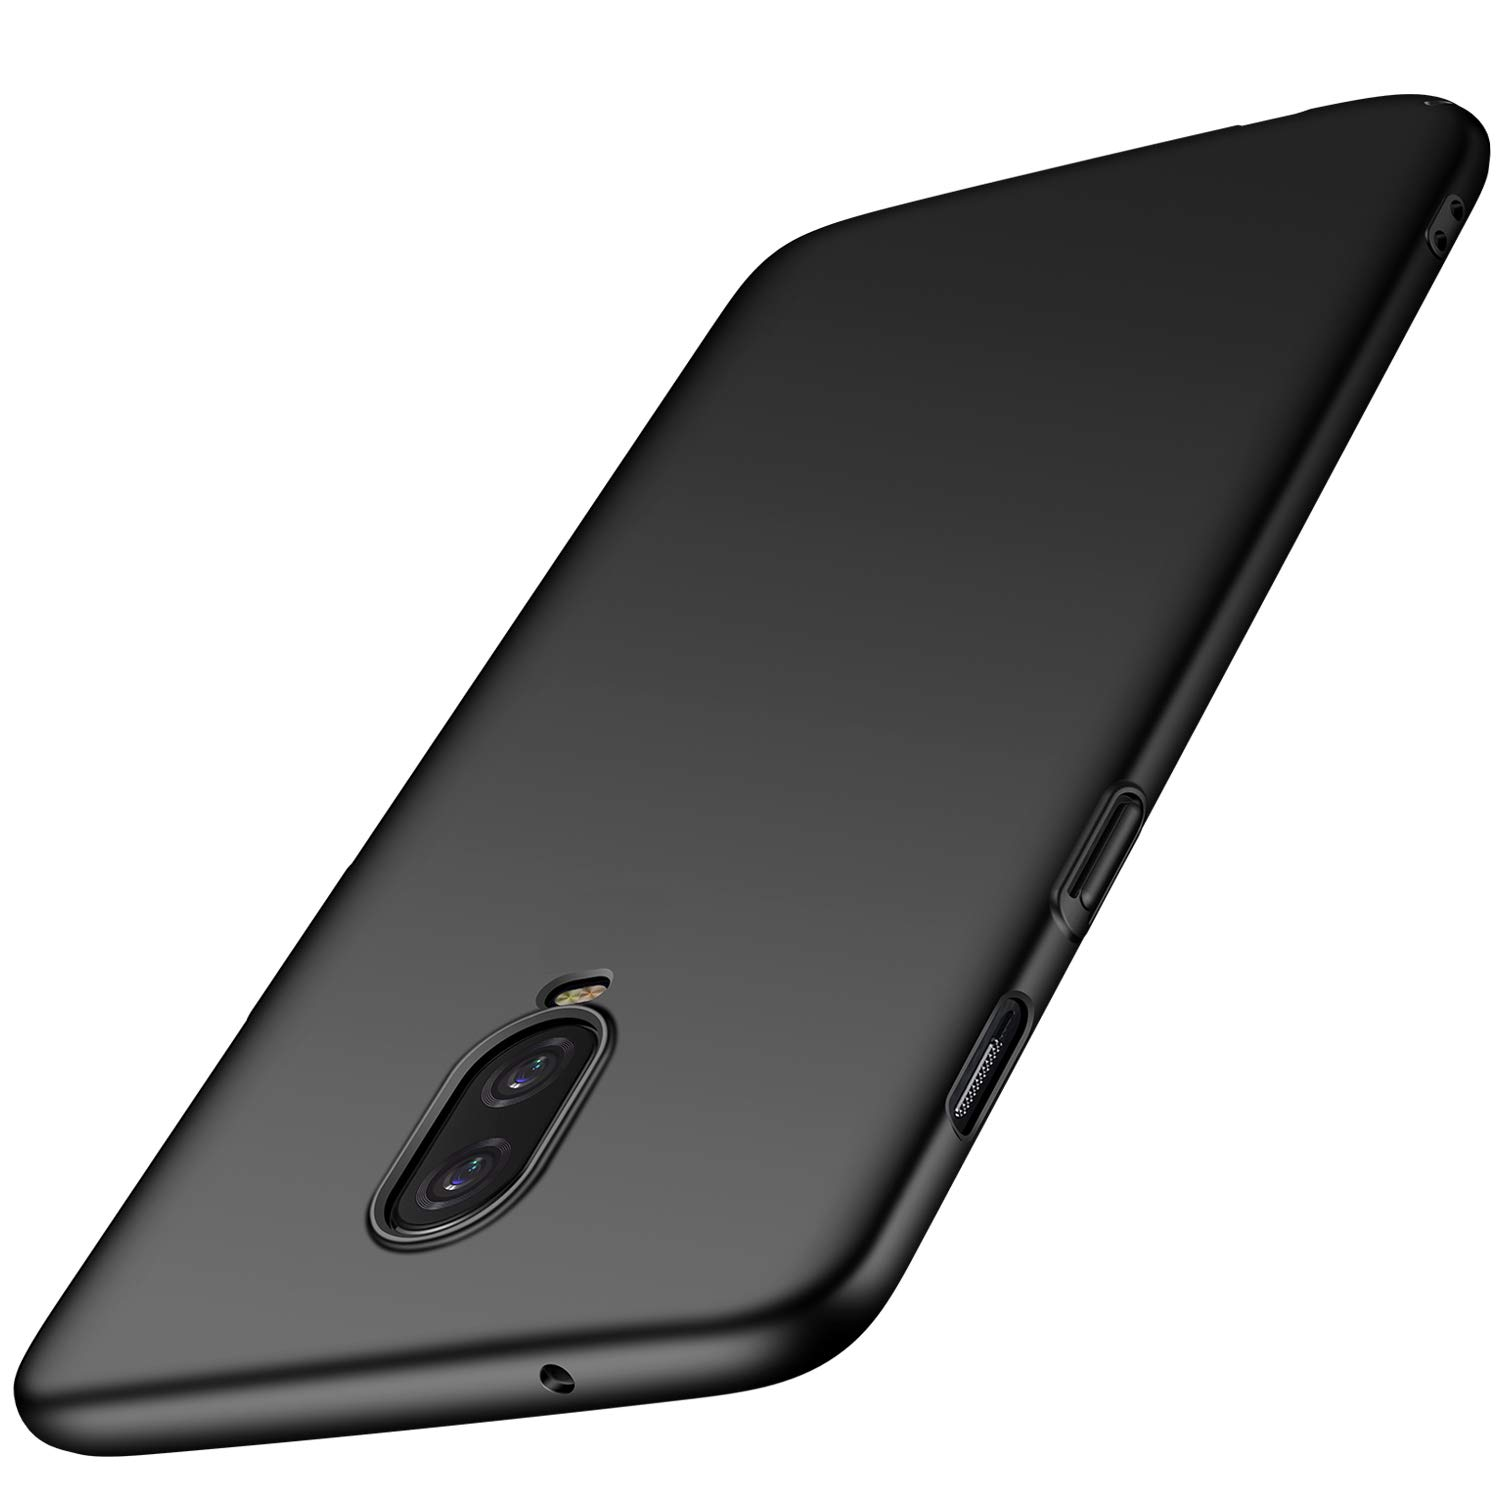 Anccer OnePlus 6T Case [Colorful Series] [Ultra-Thin] [Anti-Drop] Premium Material Slim Full Protection Cover for OnePlus 6T (Smooth Red)